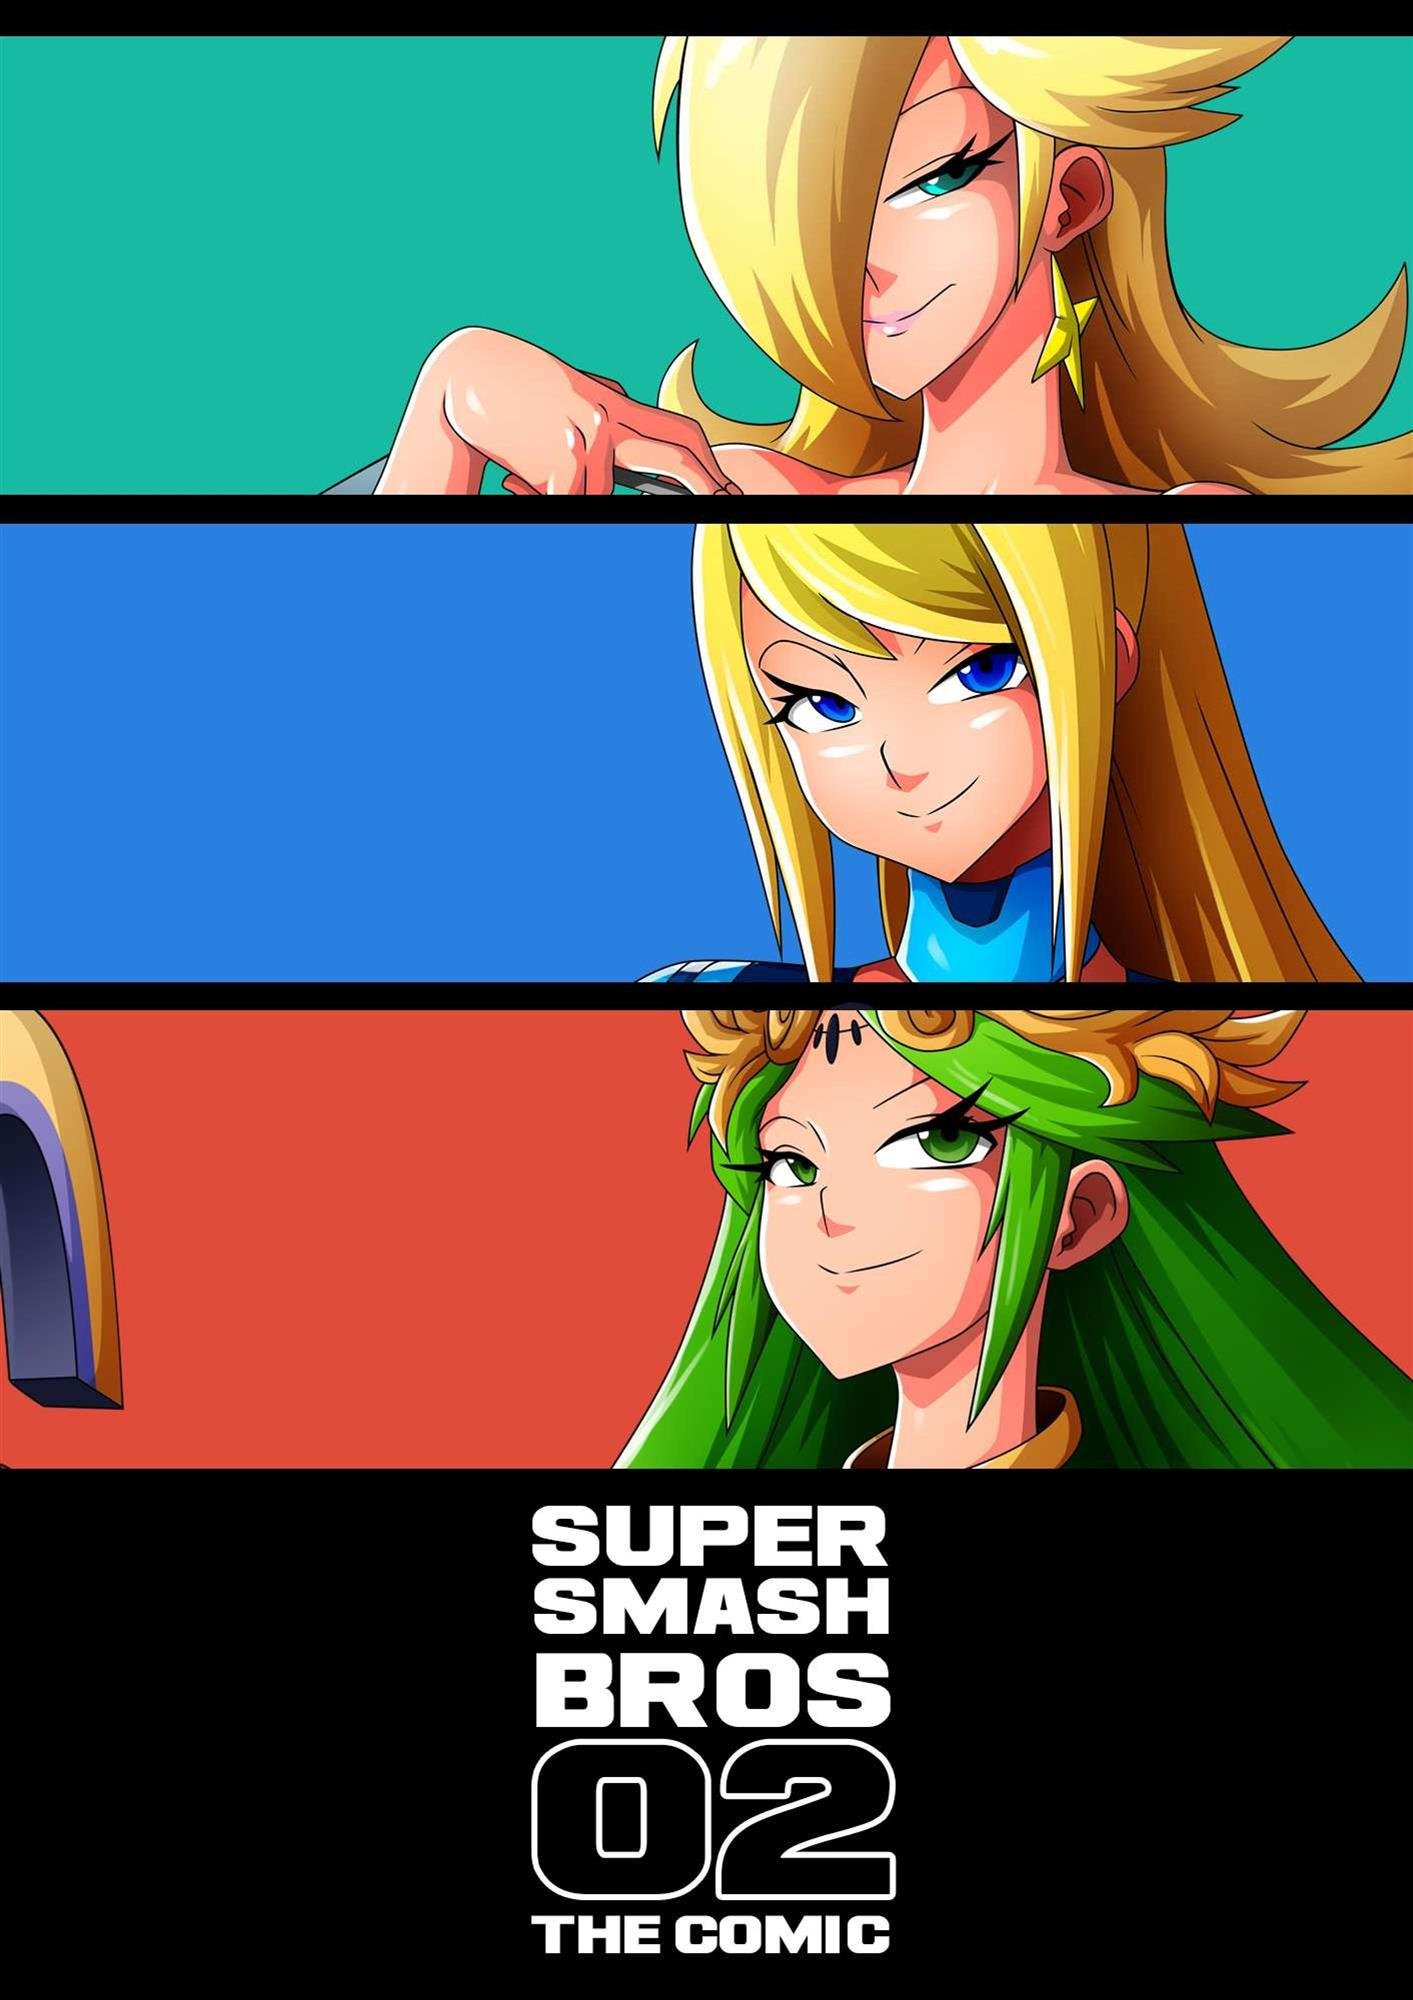 Futanari Samus Palutena Zelda Wii Fit Trainer and Princess Peach Rosalina fucking each other Nintendo